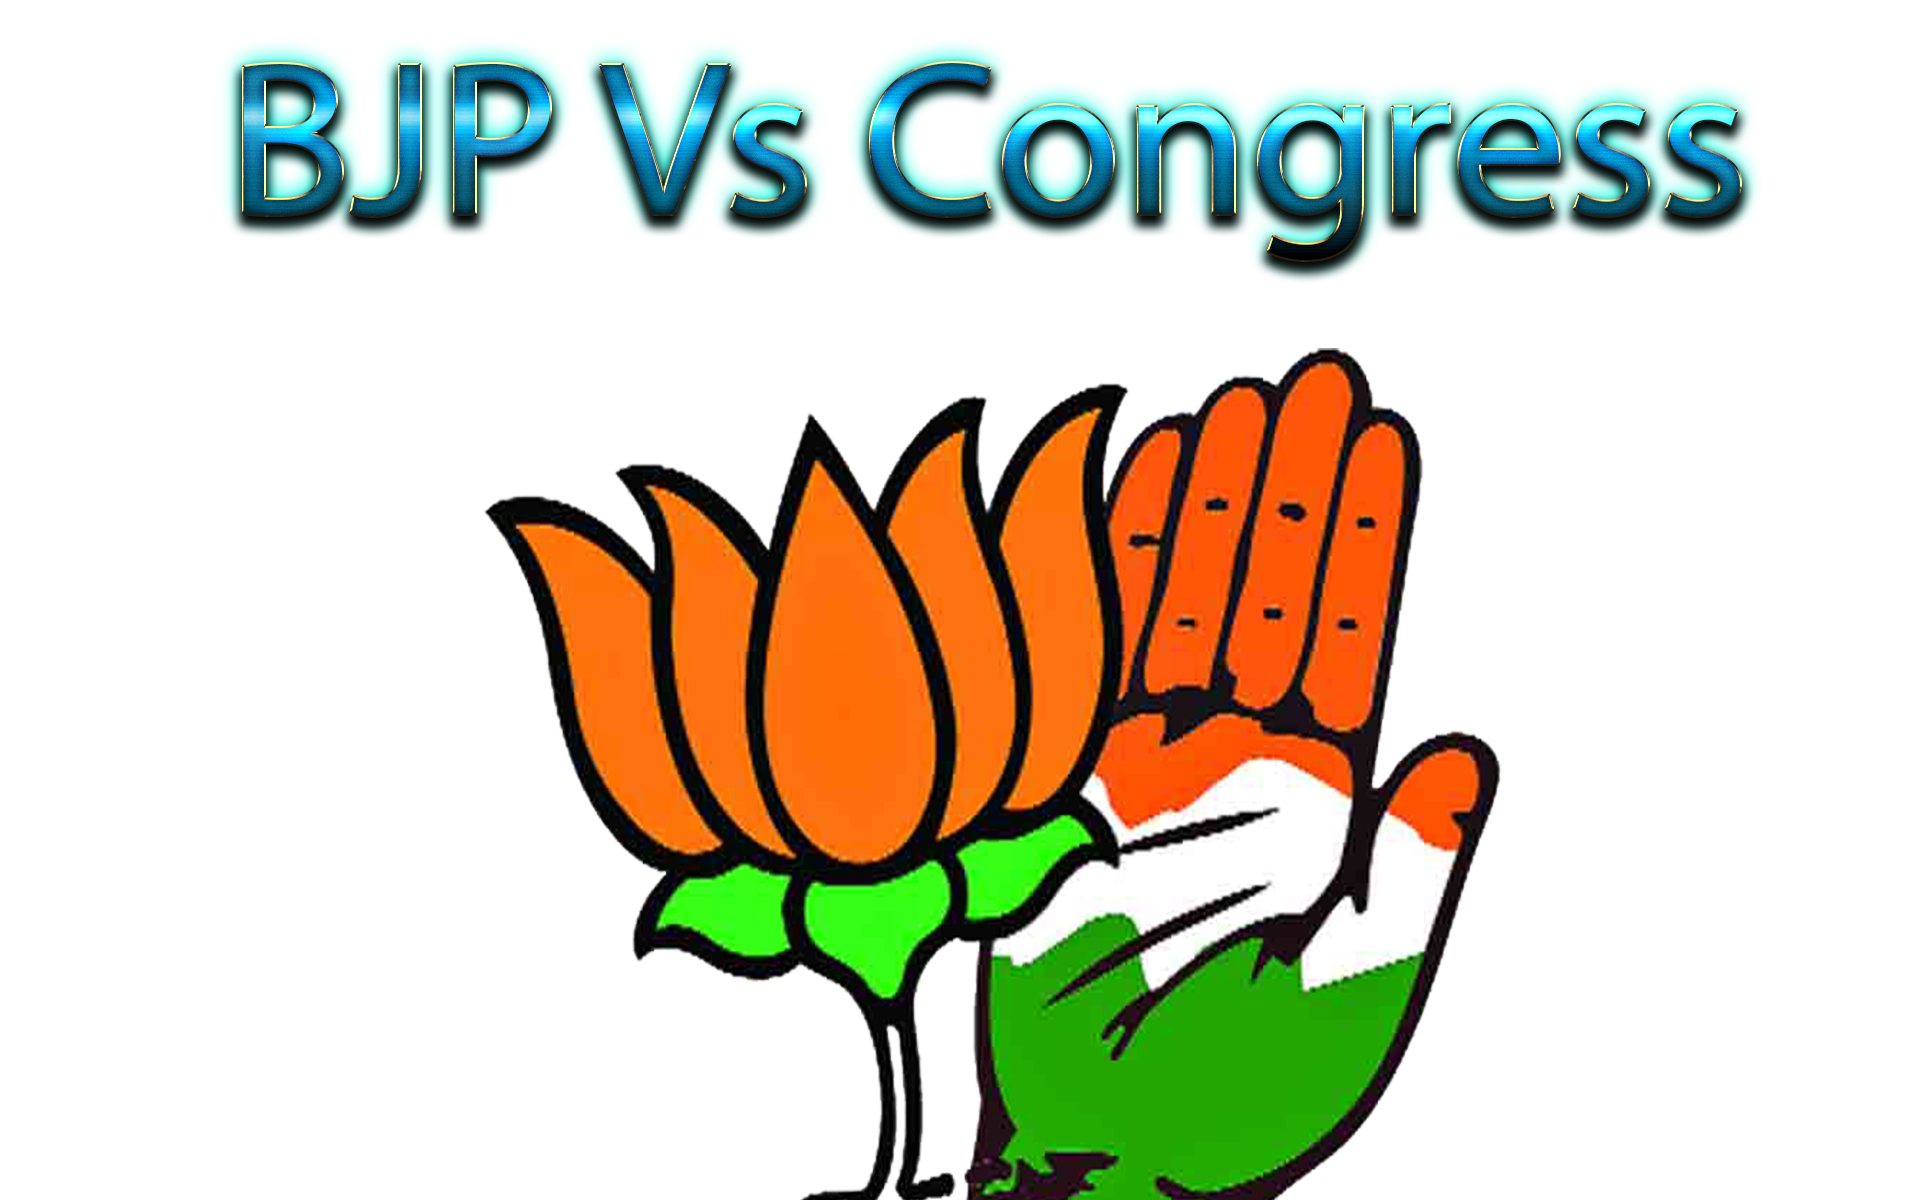 BJP Vs Congress PNG Free Images.